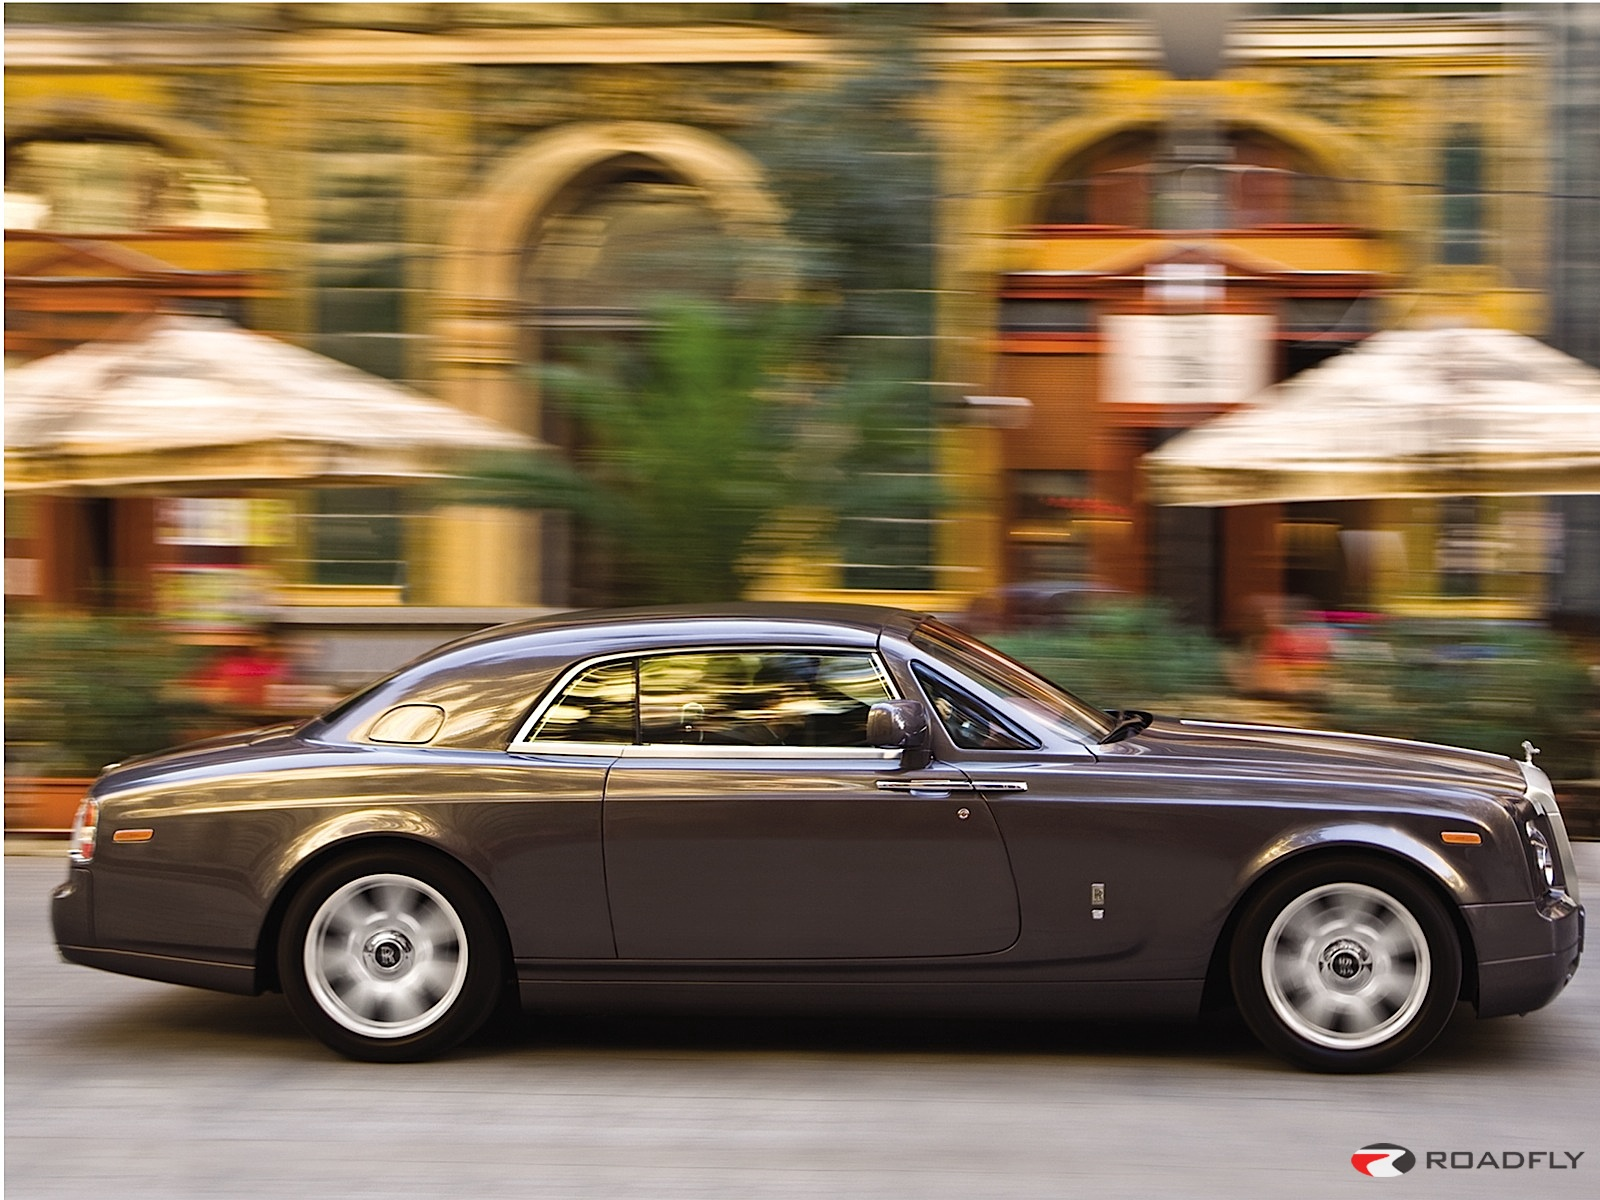 rolls-royce-phantom-coupe-9-high-resolut